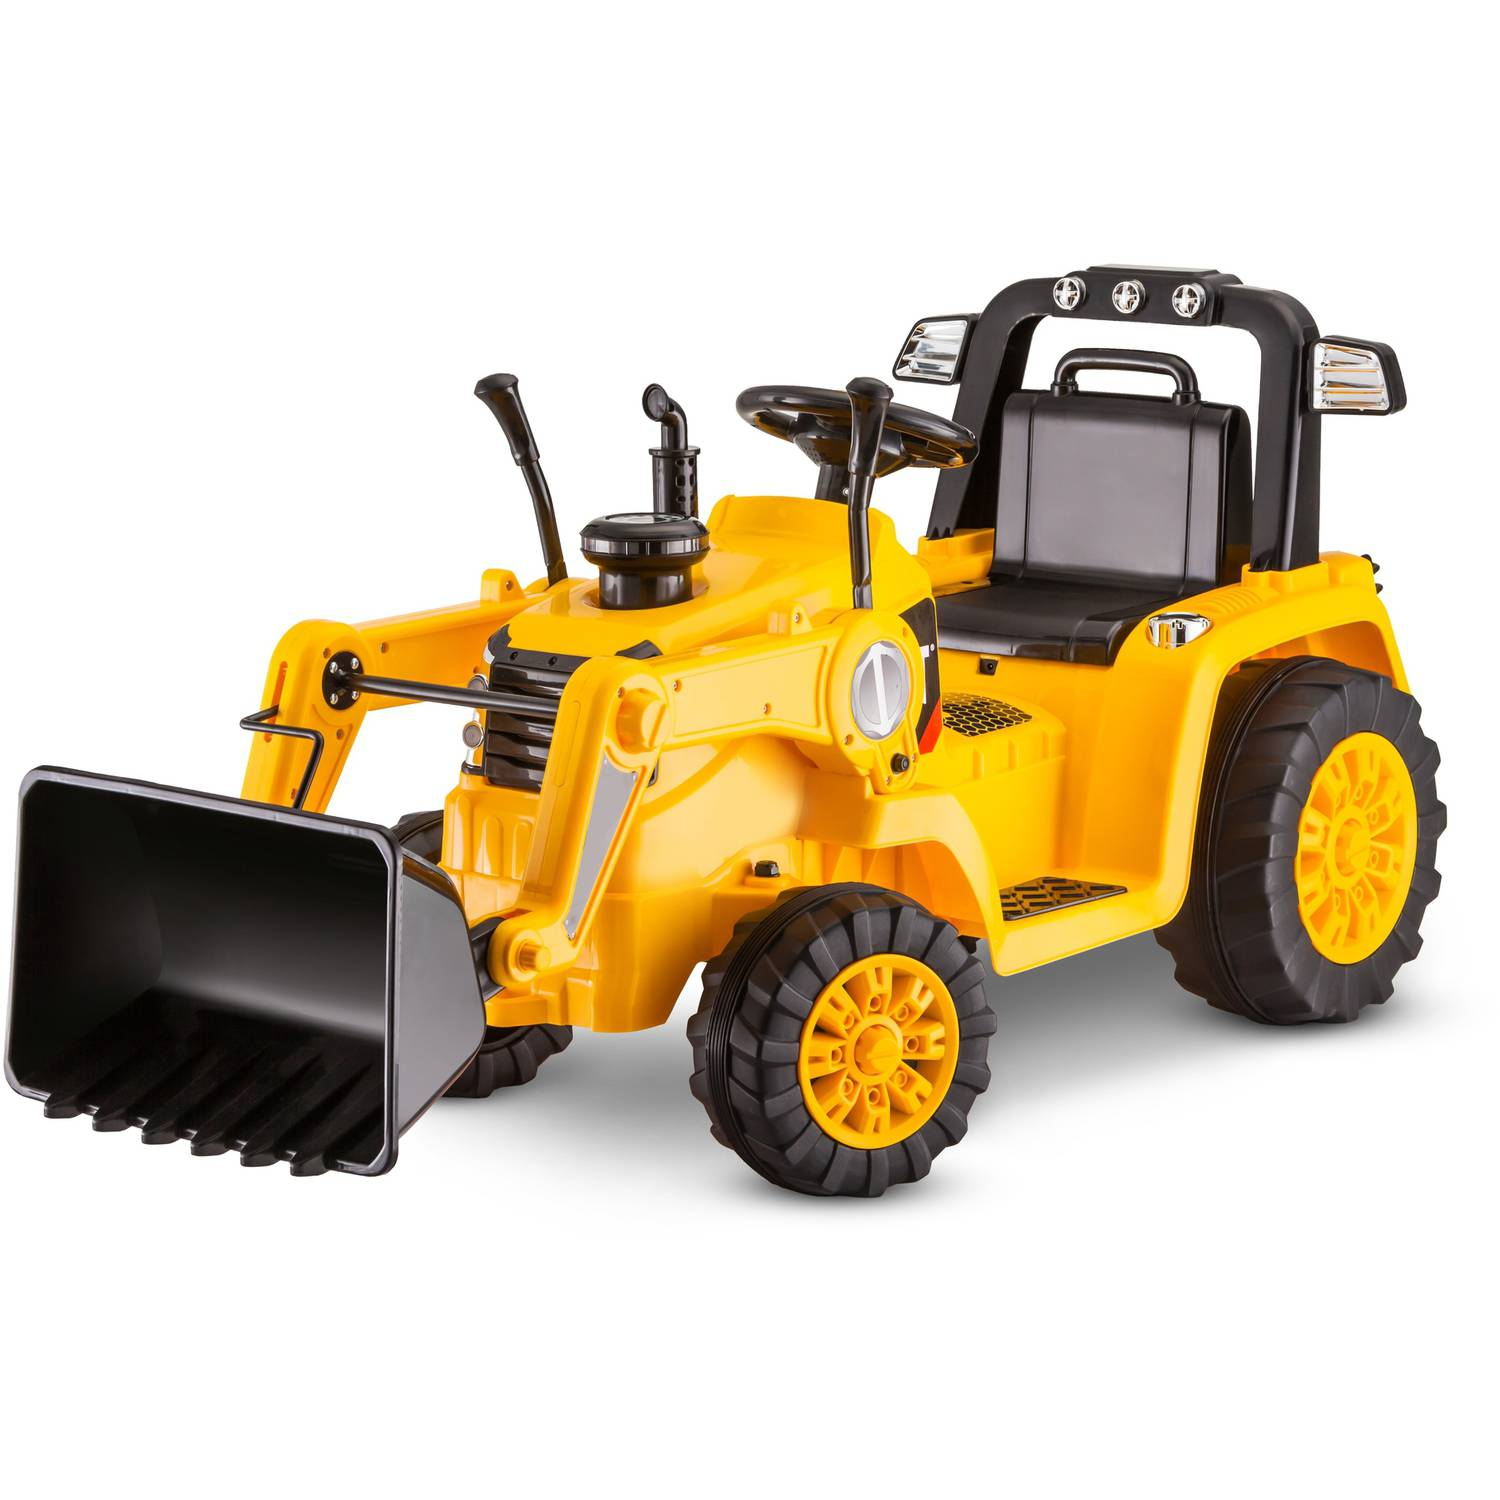 Cat Power Wheels Tractor : Kidtrax cat bulldozer tractor v powered ride on yellow